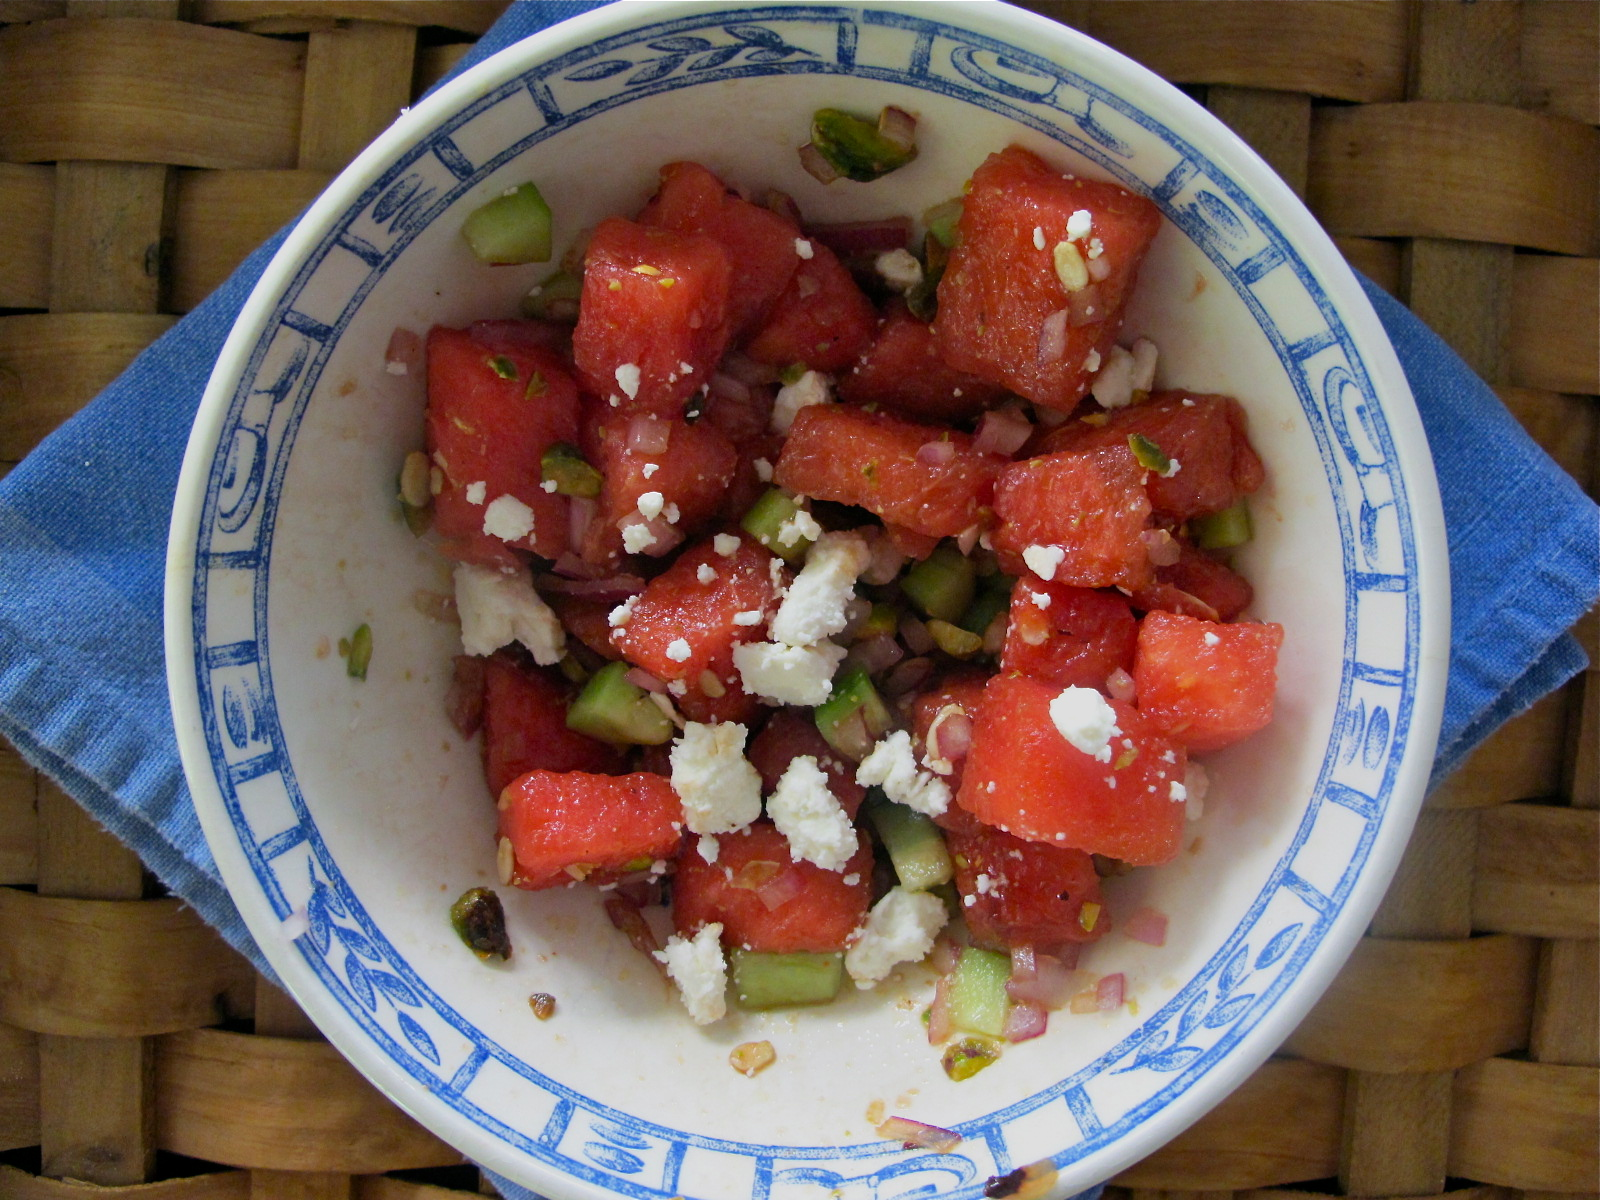 WATERMELON SALAD WITH FETA, CUCUMBER, ONION AND PISTACHIOS